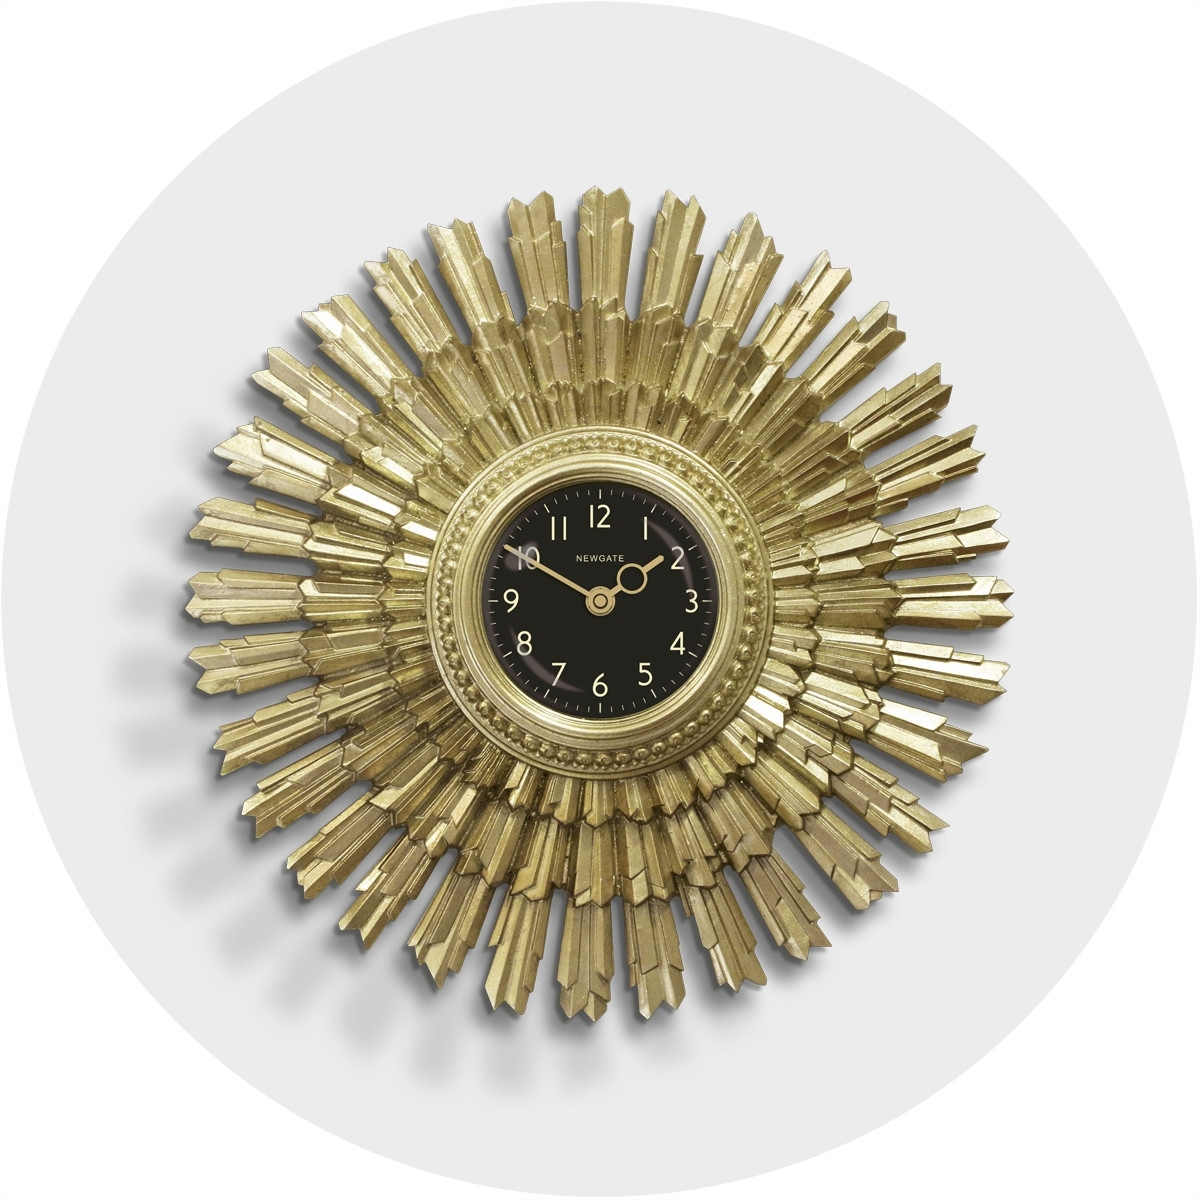 Art Deco Sunburst Wall Clock | Vintage Gold | Newgate | Sunblaze intended for Art Deco Wall Clock (Image 3 of 20)